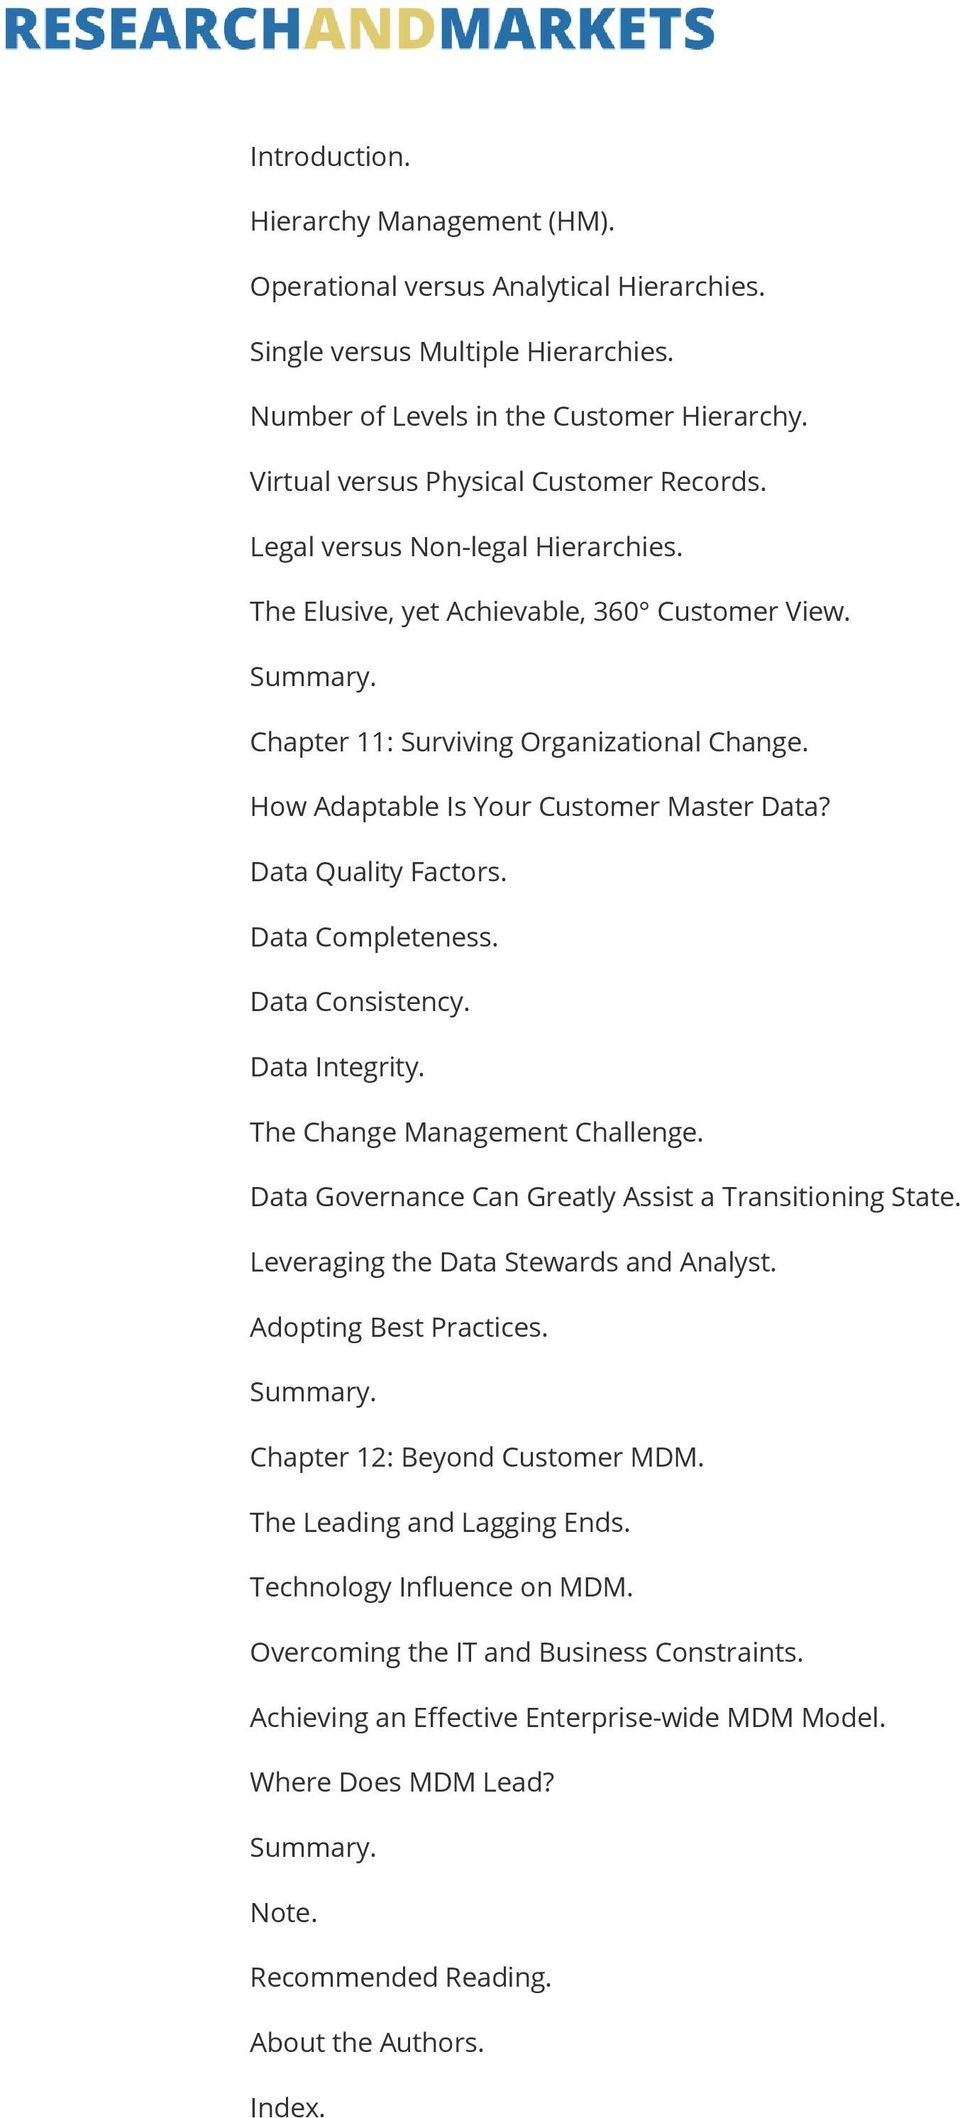 How Adaptable Is Your Customer Master Data? Data Quality Factors. Data Completeness. Data Consistency. Data Integrity. The Change Management Challenge.